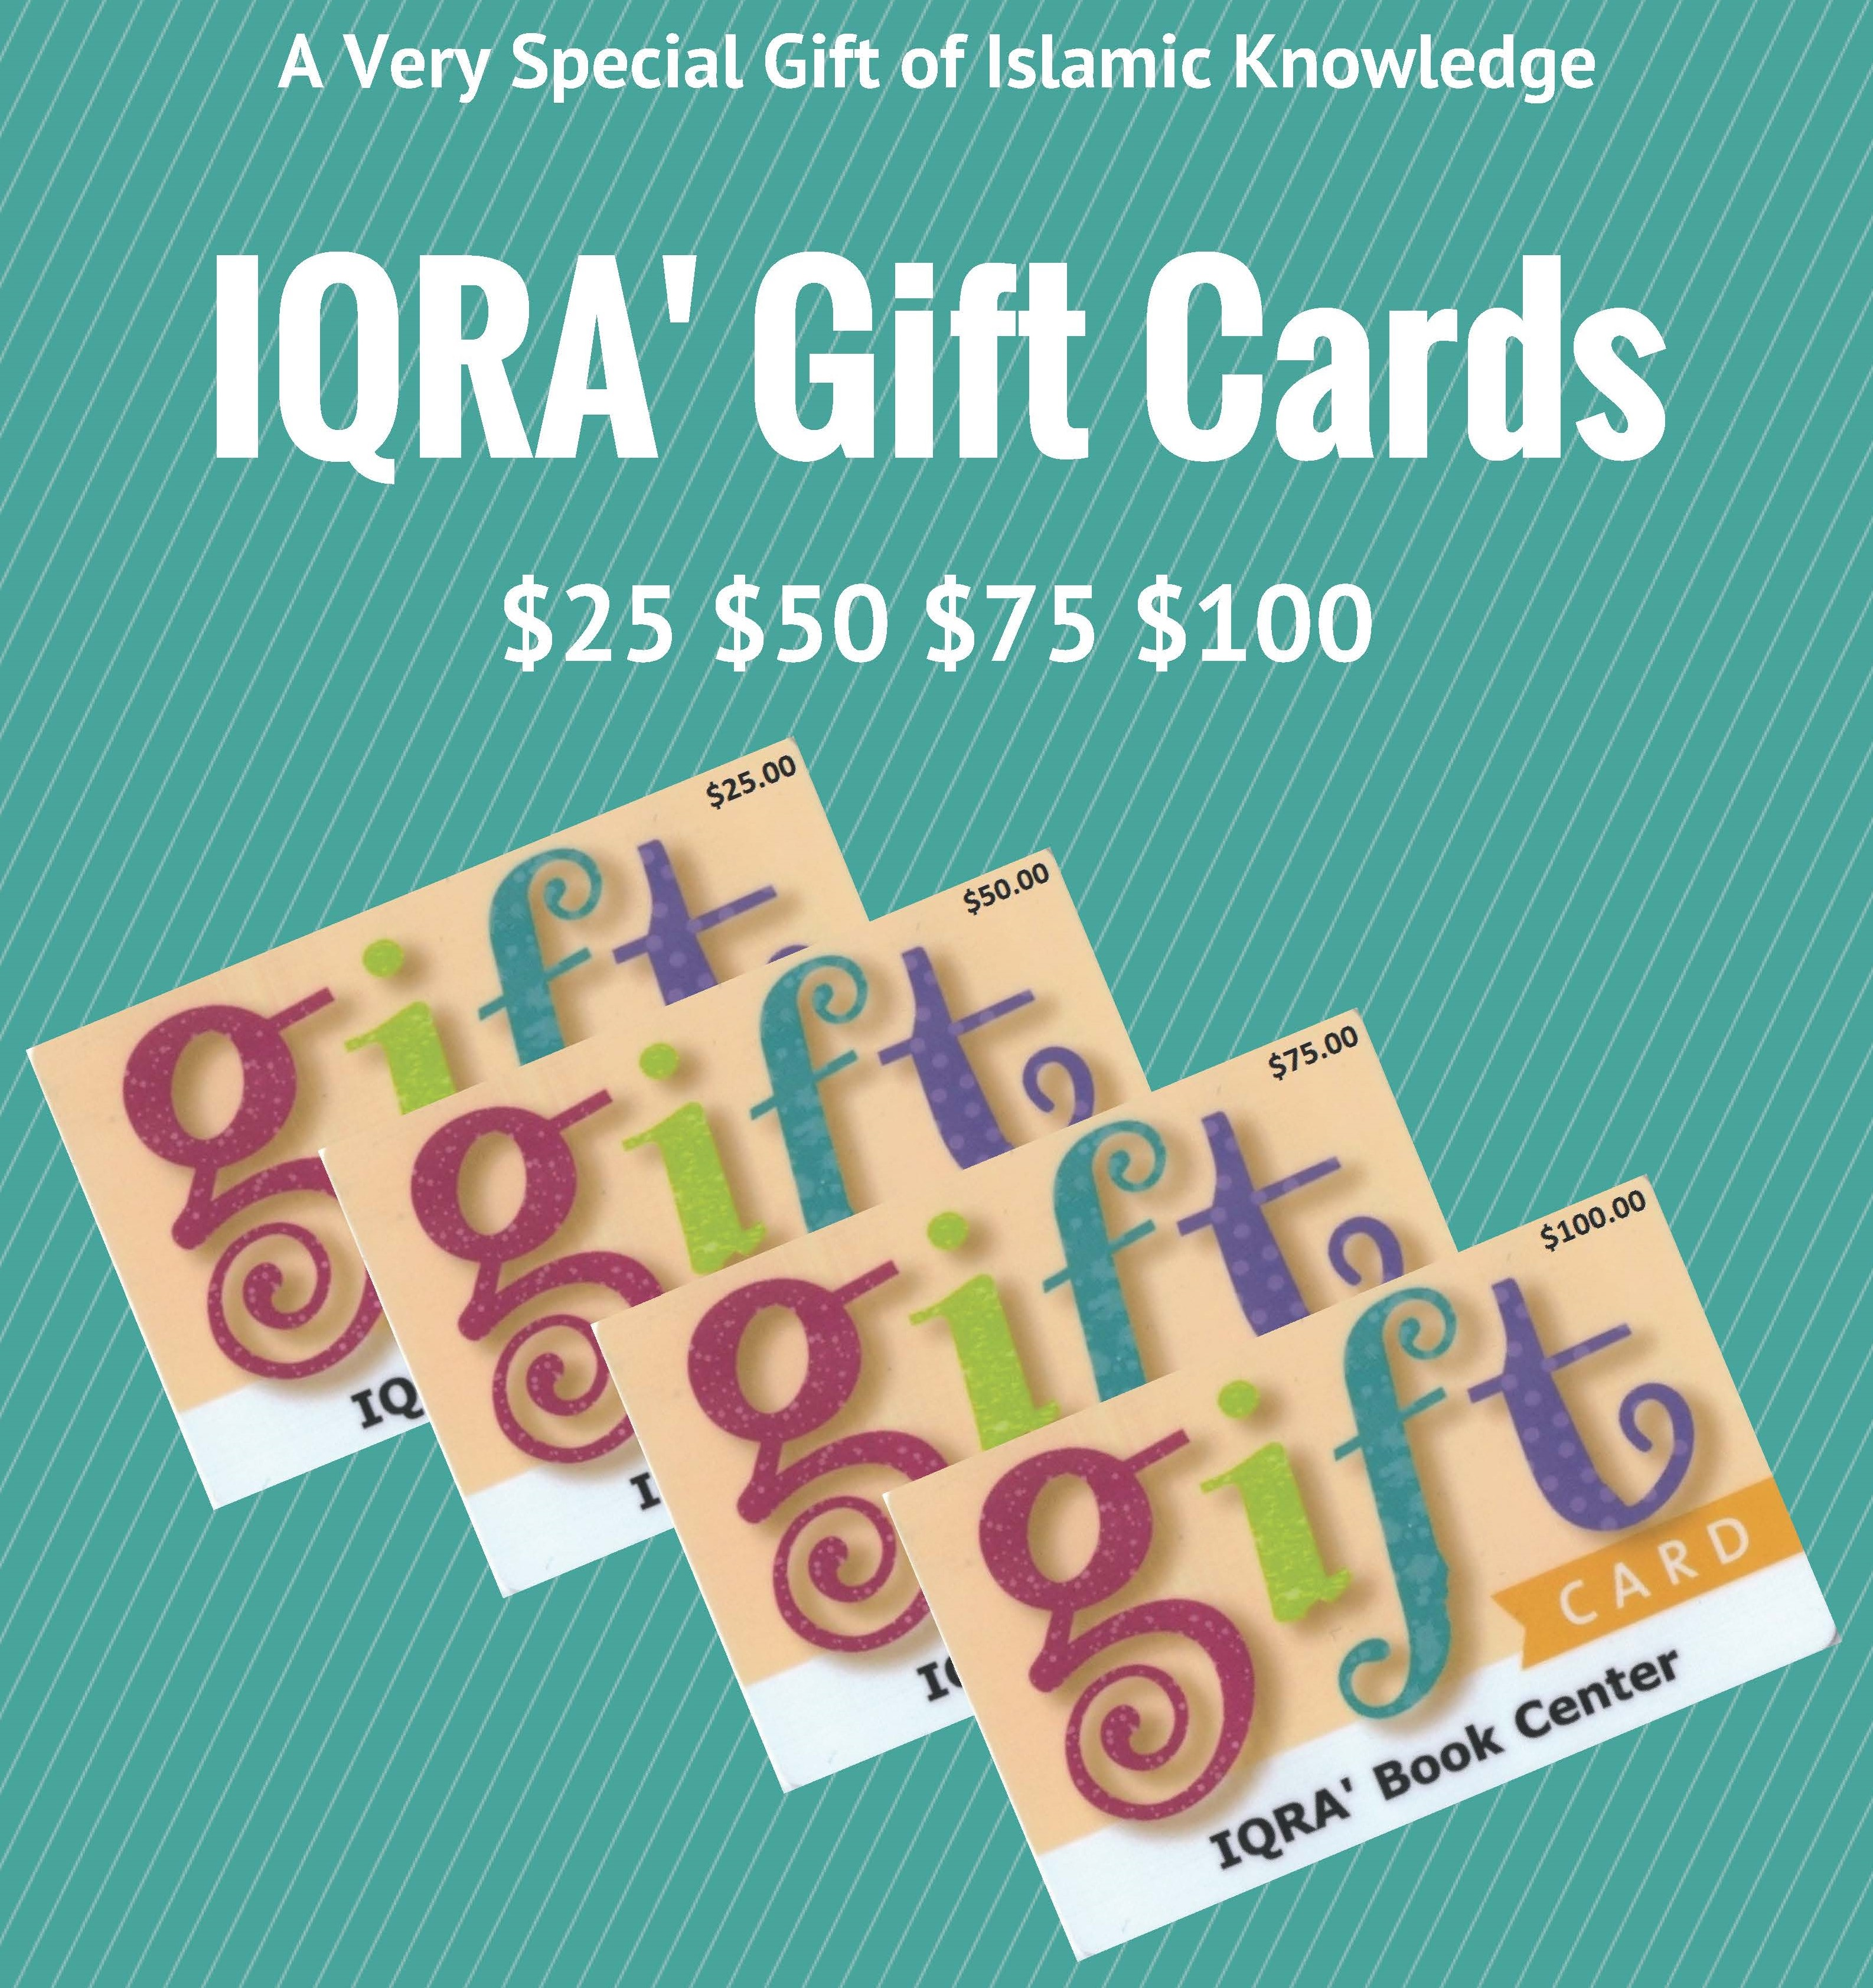 IQRA Gift Card  $75.00